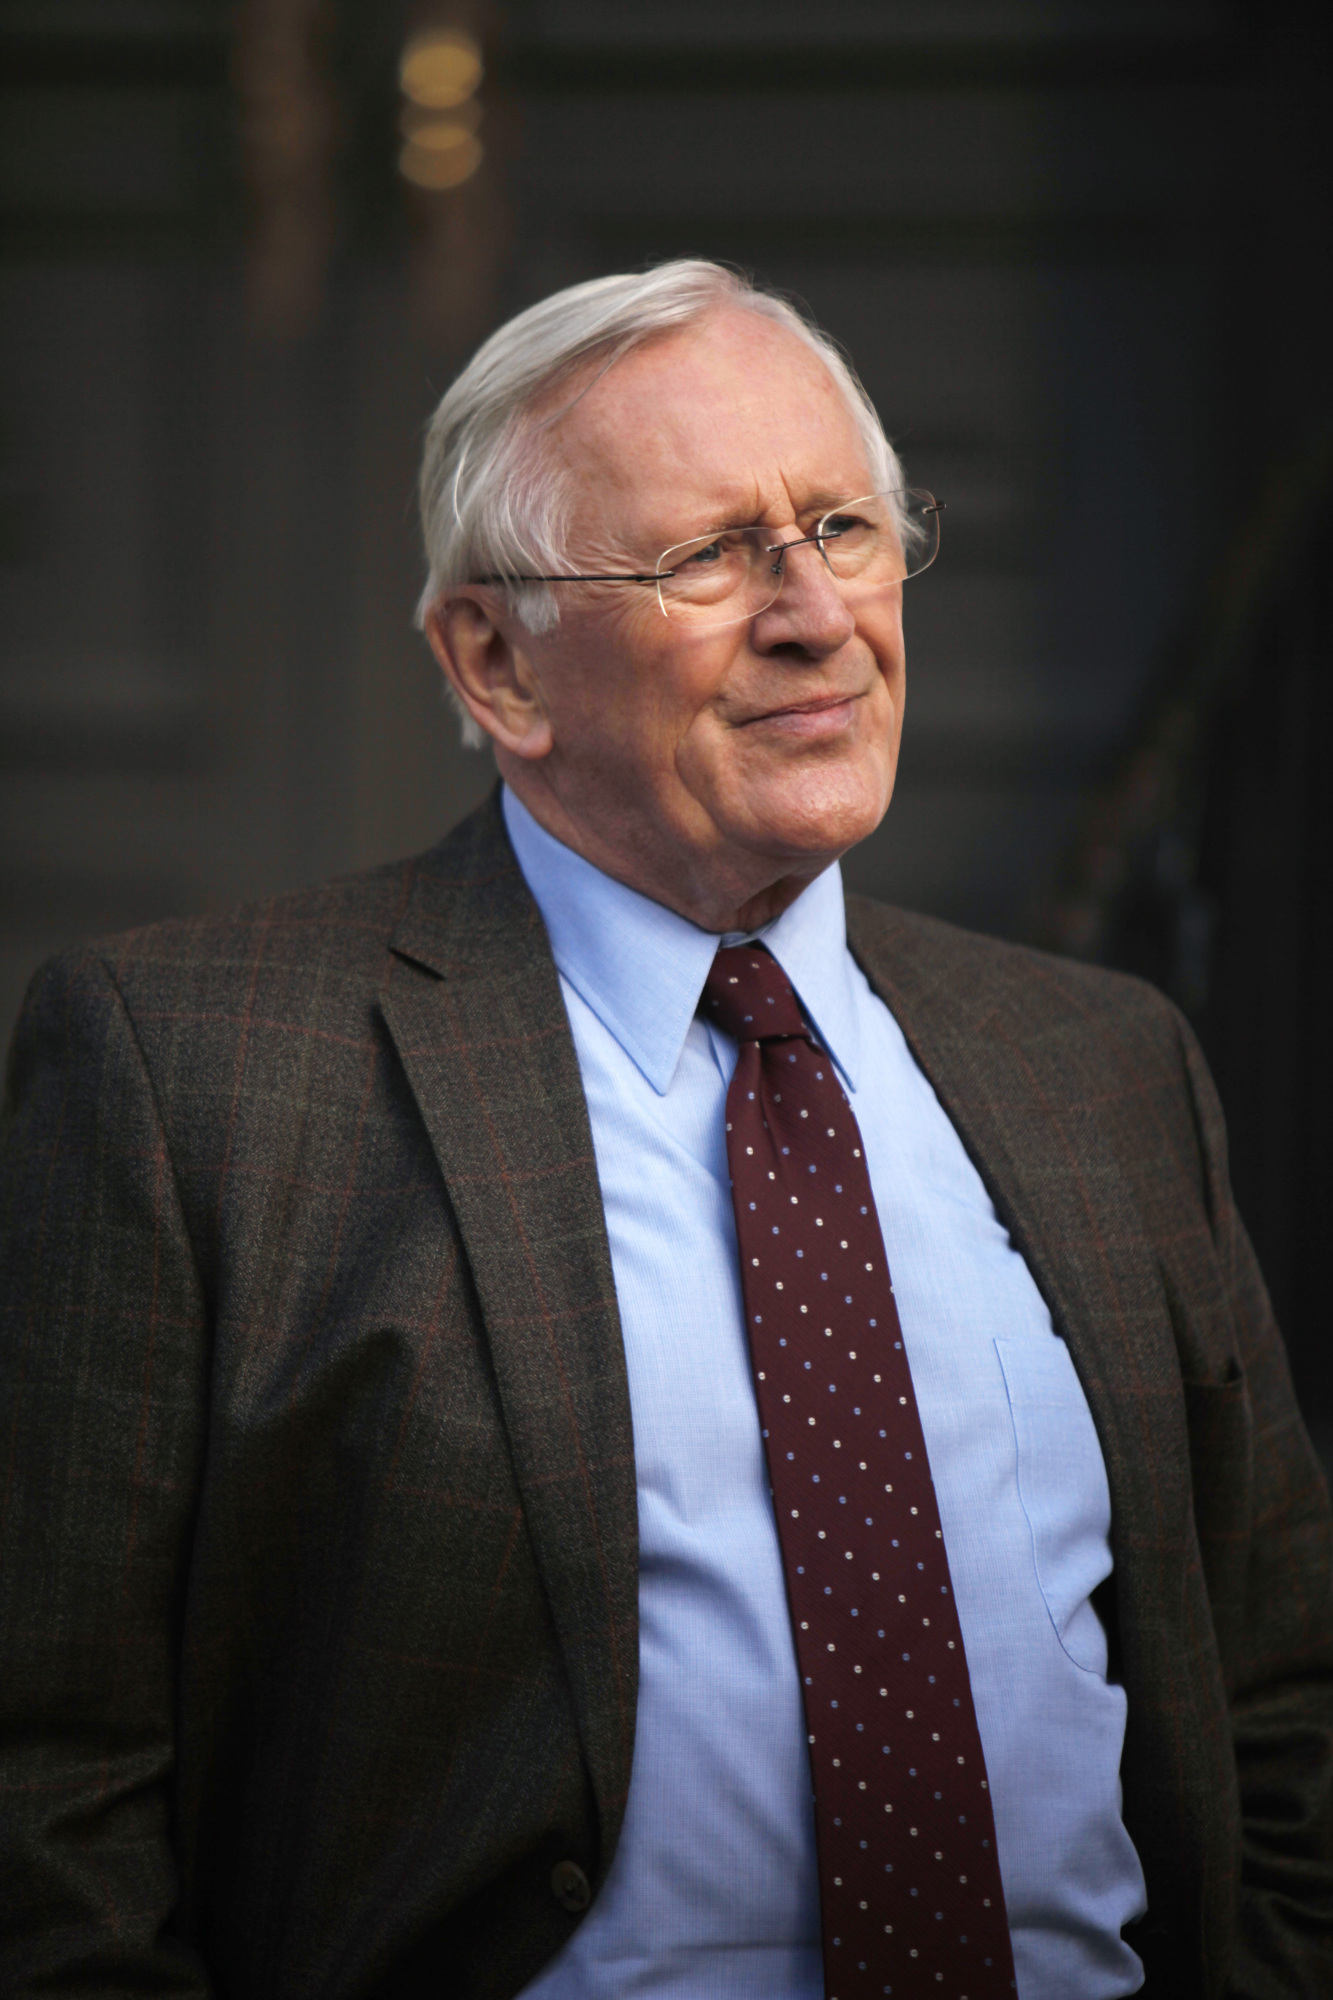 35. Len Cariou was born and raised in Winnipeg, Manitoba.